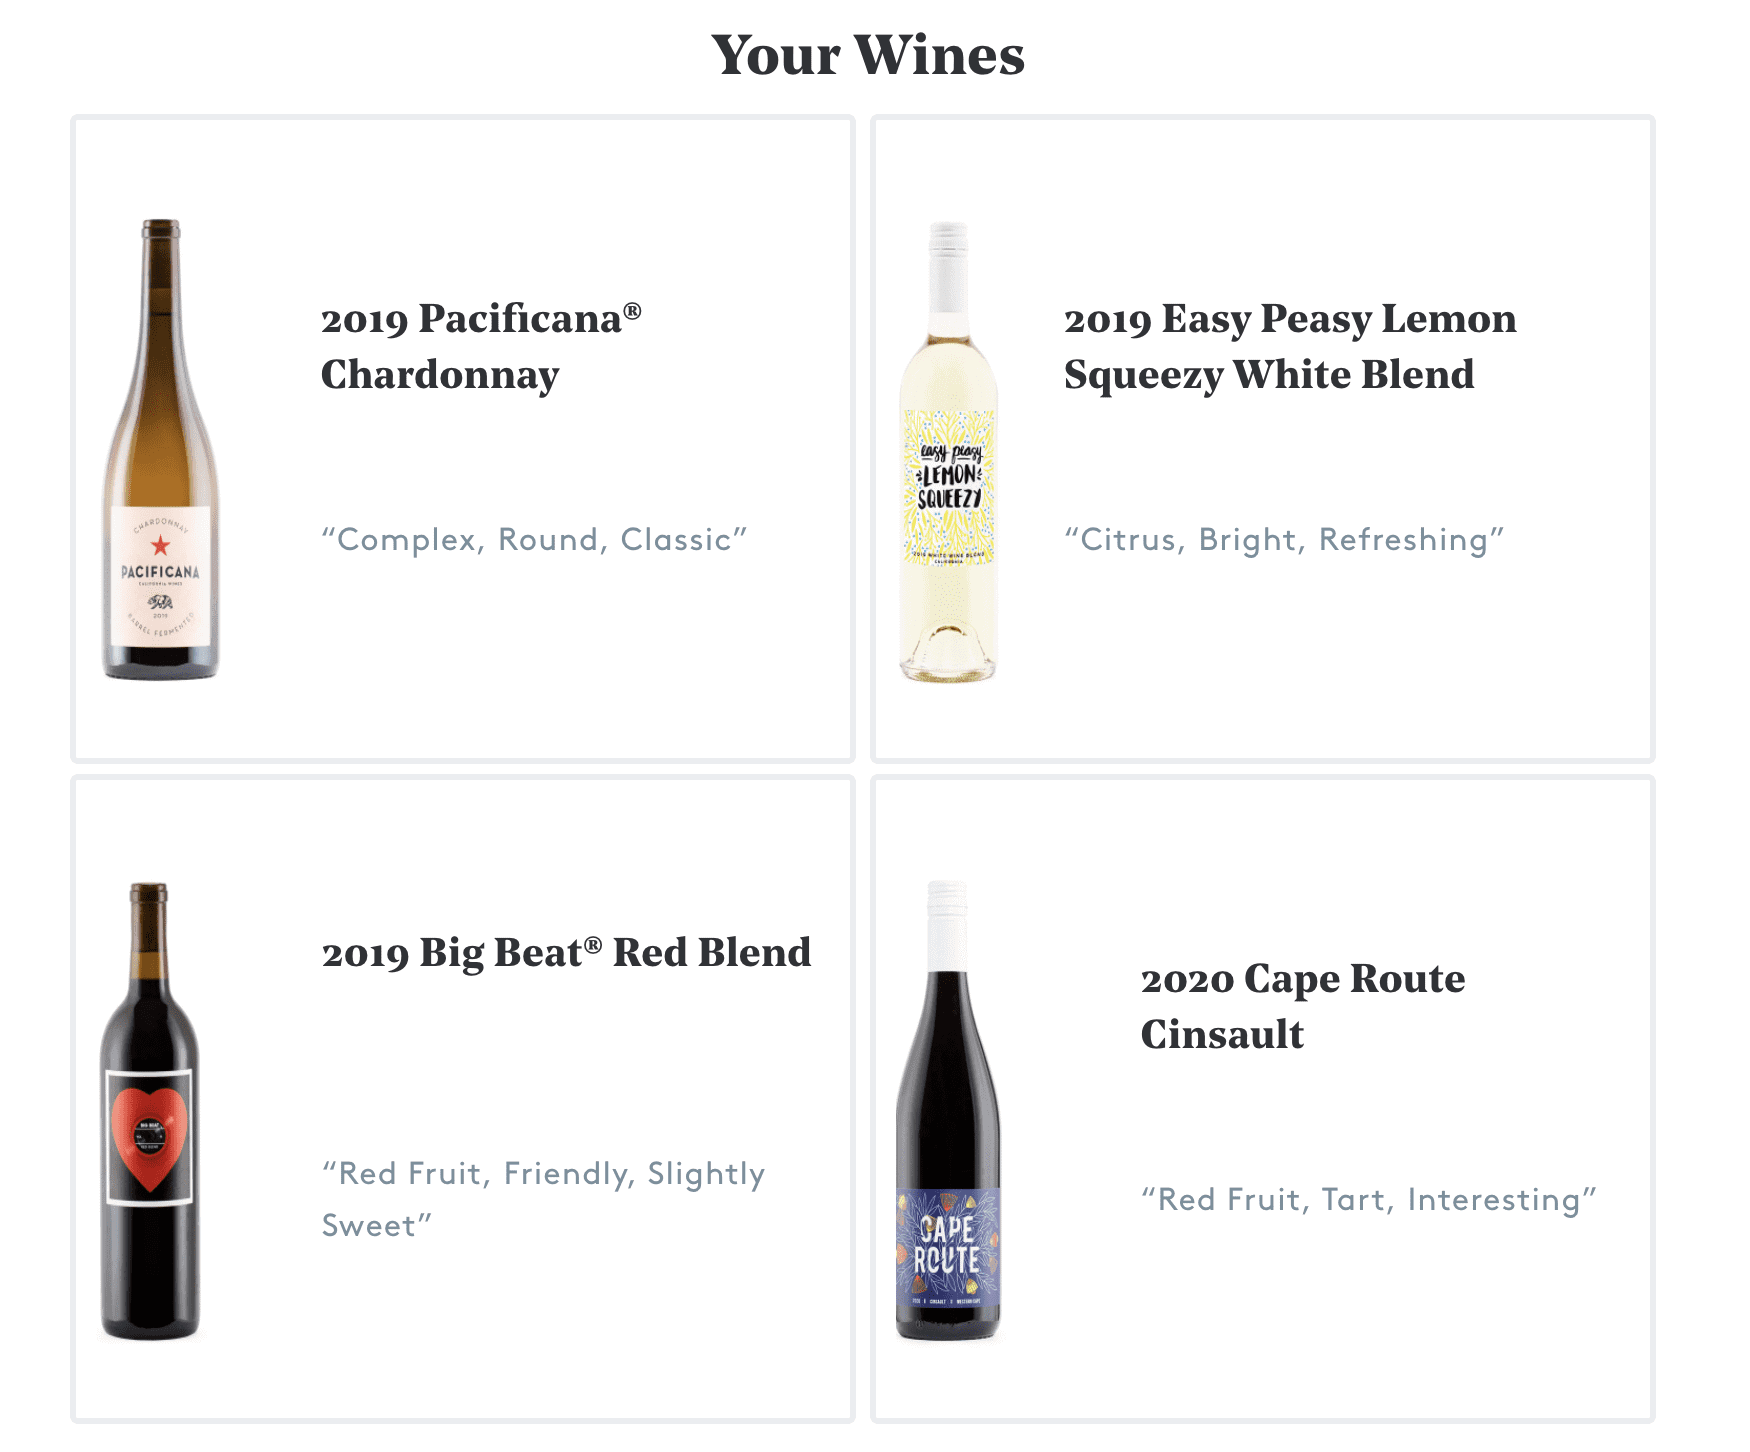 Winc Wine options